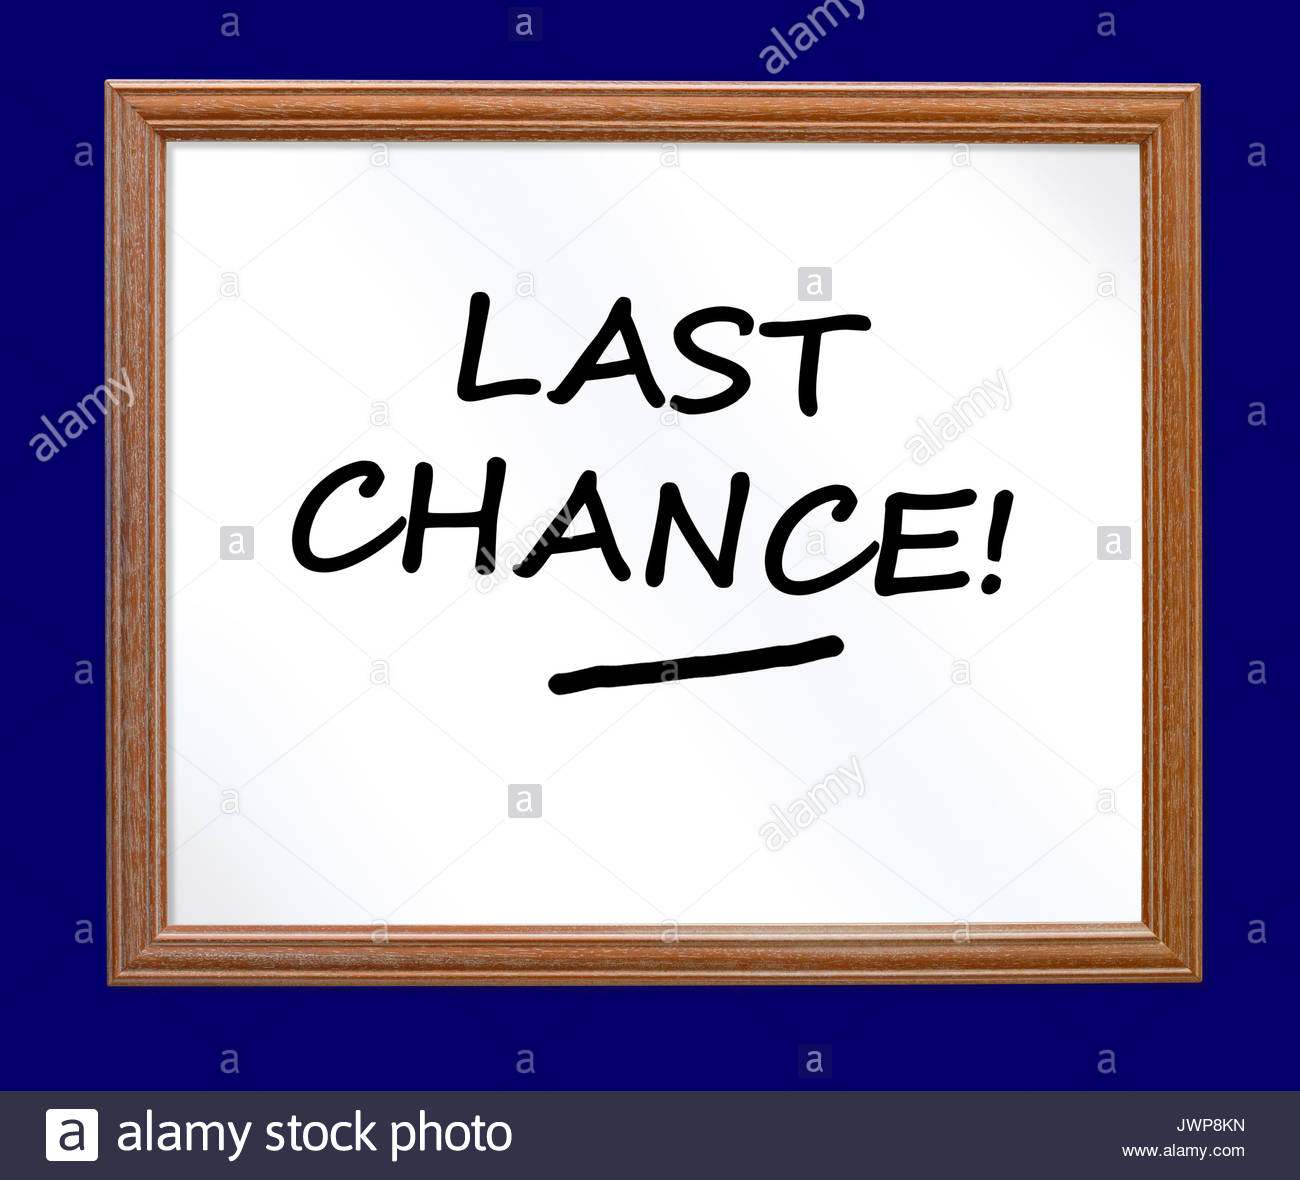 Last chance written on a whiteboard, Blandford, Dorset, England, UK - Stock Image